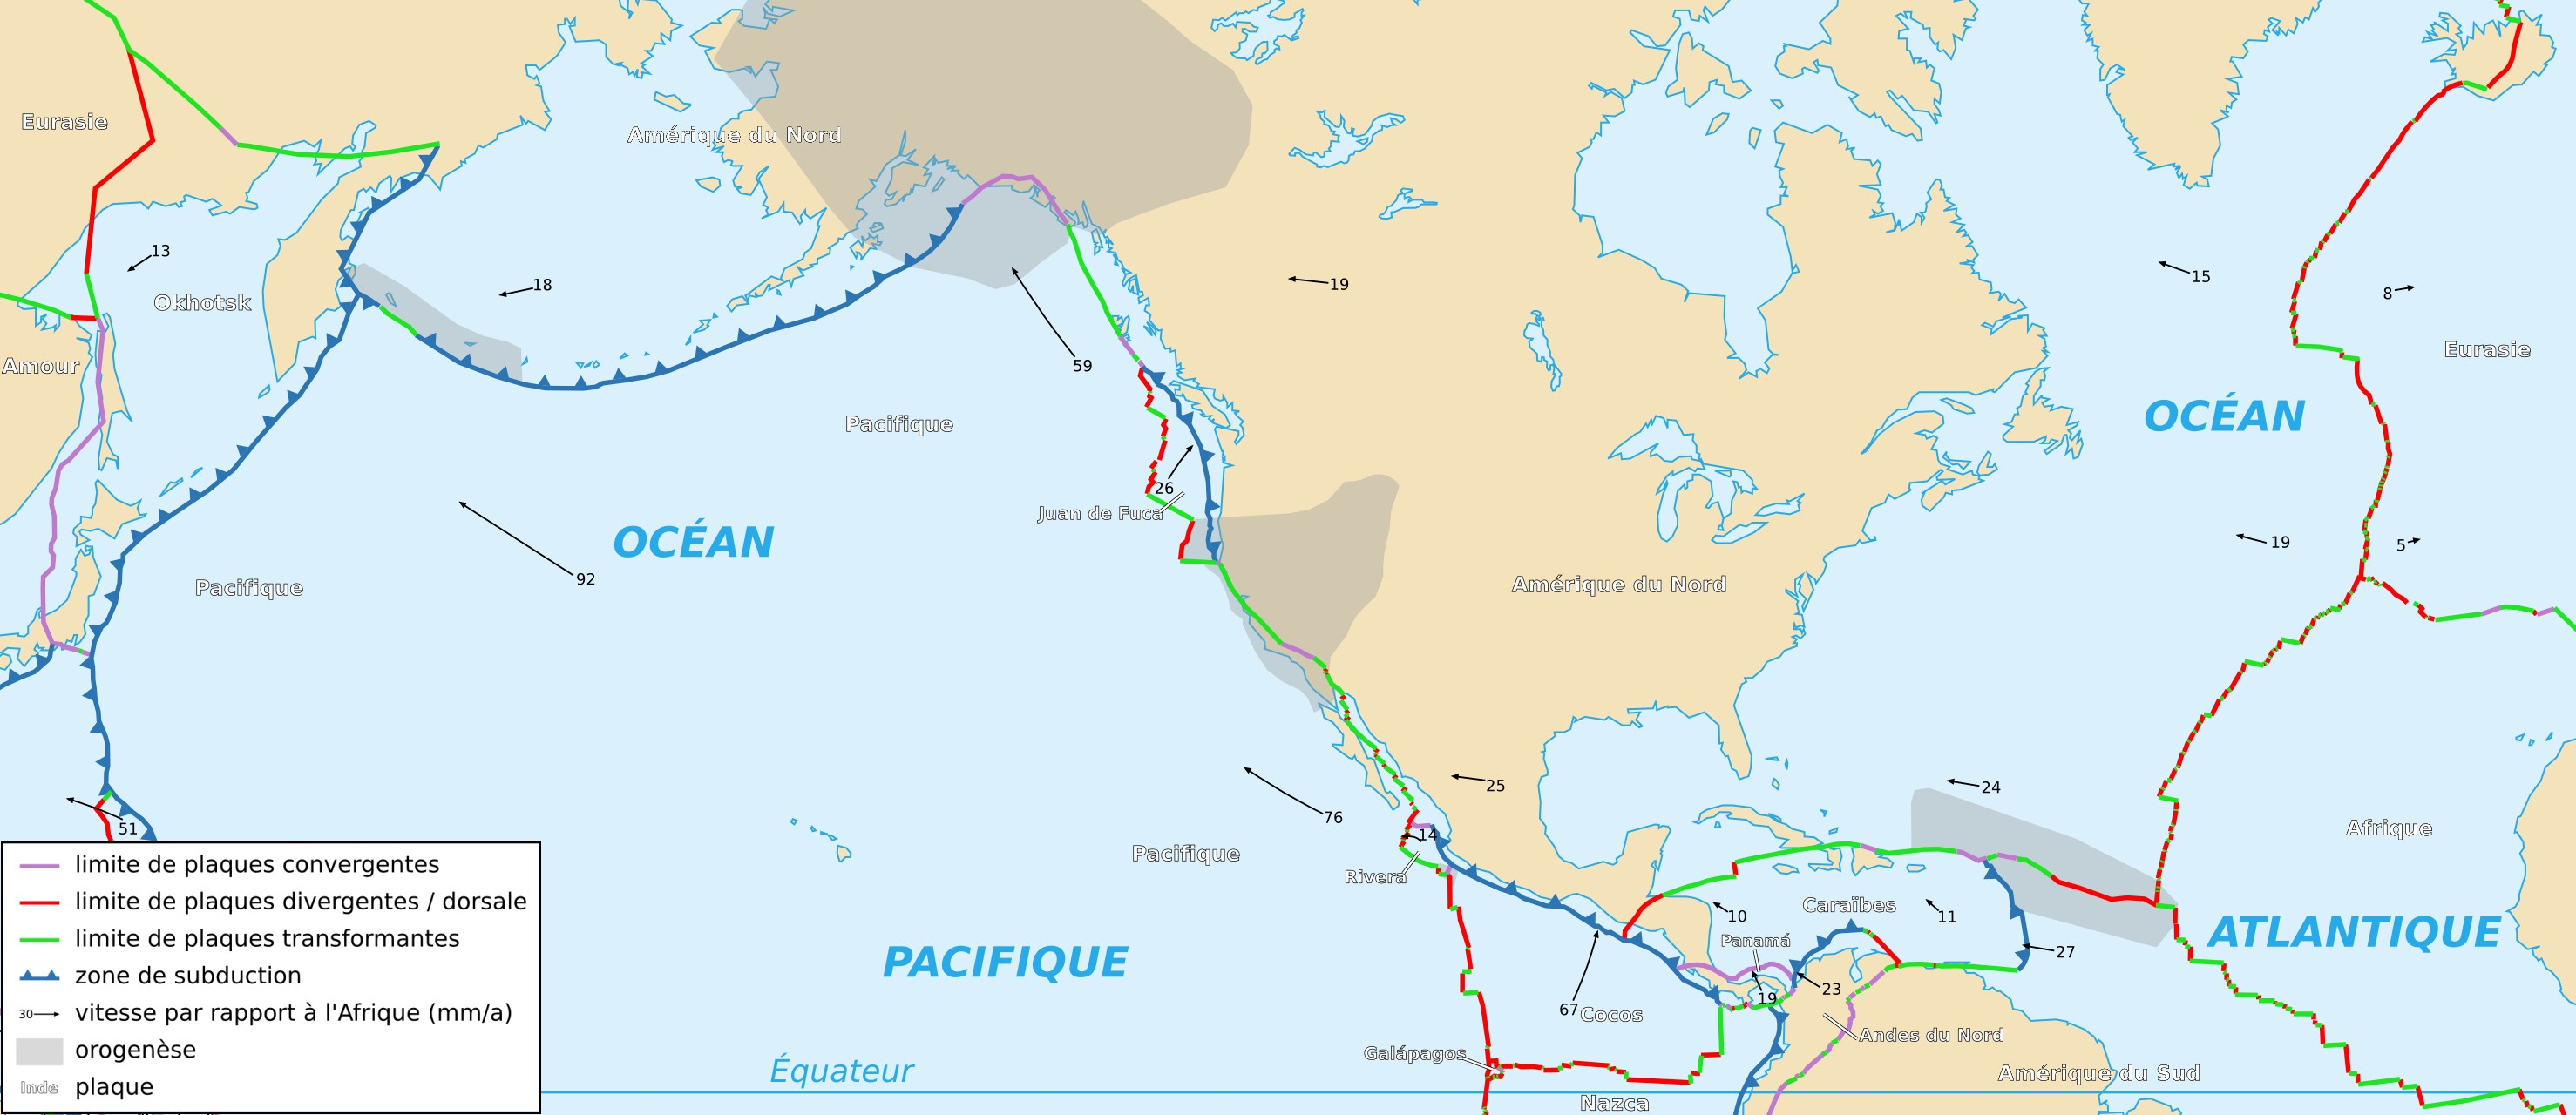 FileNorth American Plate Mapfrpng Wikimedia Commons - Map of us plate boundaries